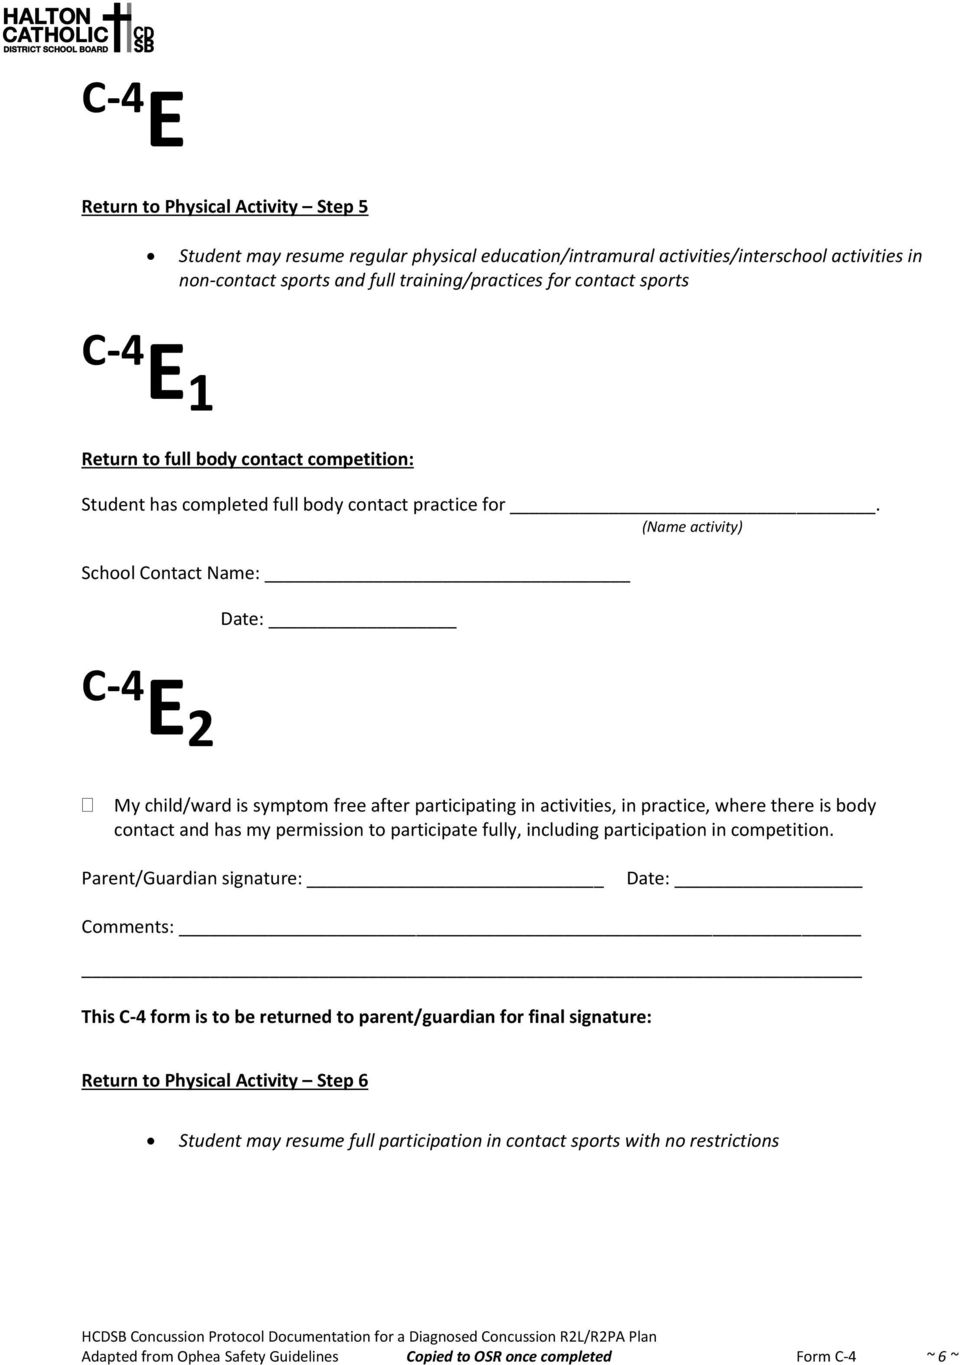 (Name activity) School Contact Name: Date: C-4 E 2 My child/ward is symptom free after participating in activities, in practice, where there is body contact and has my permission to participate